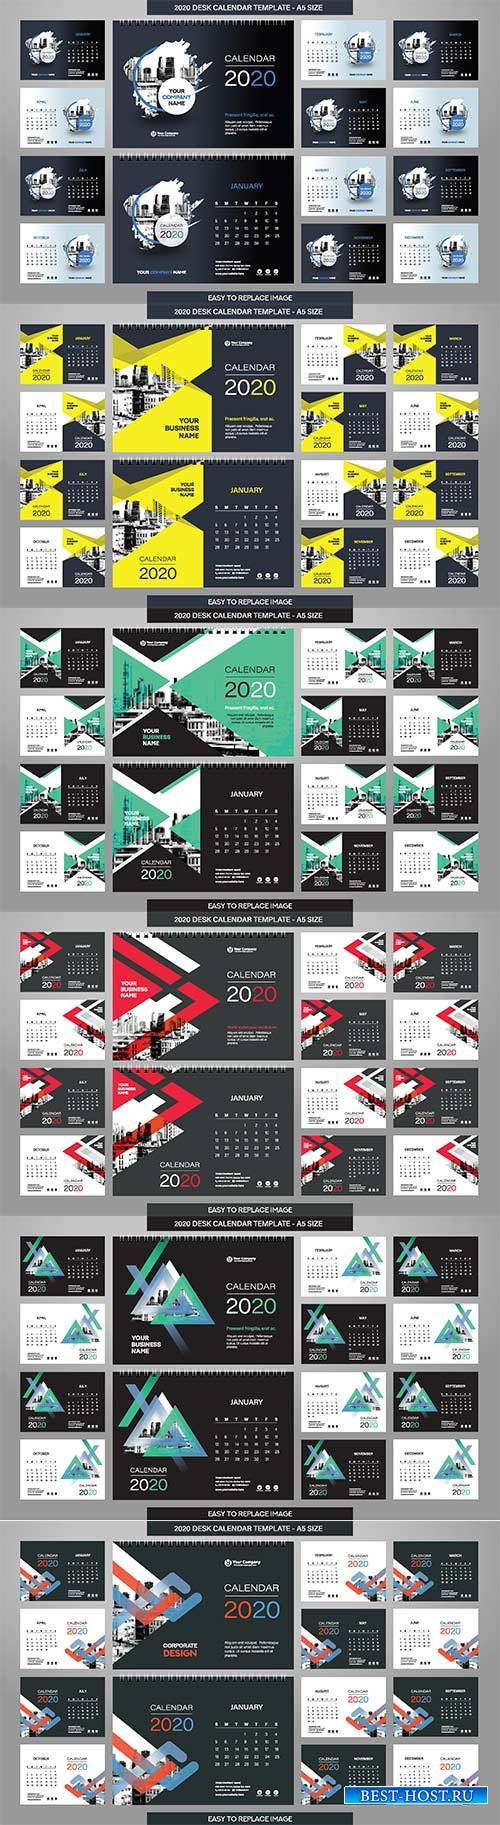 Desk Calendar 2020 template - 12 months included - A5